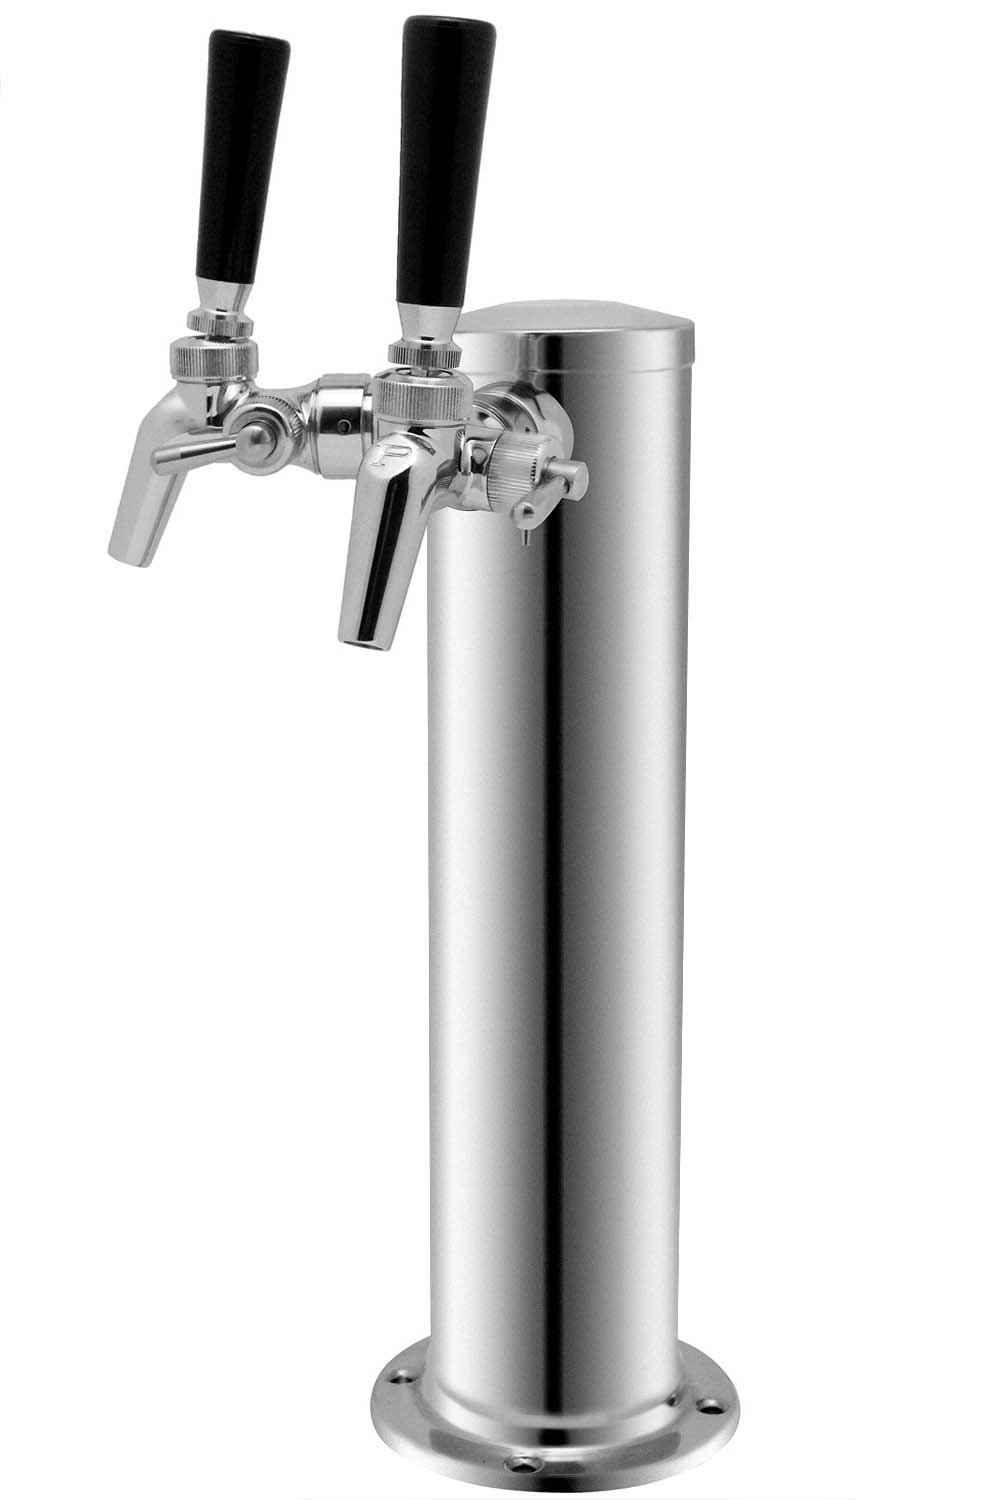 Kegco 2FT650SS Double Faucet SS Draft Beer Tower w/Perlick 650SS SS Faucets